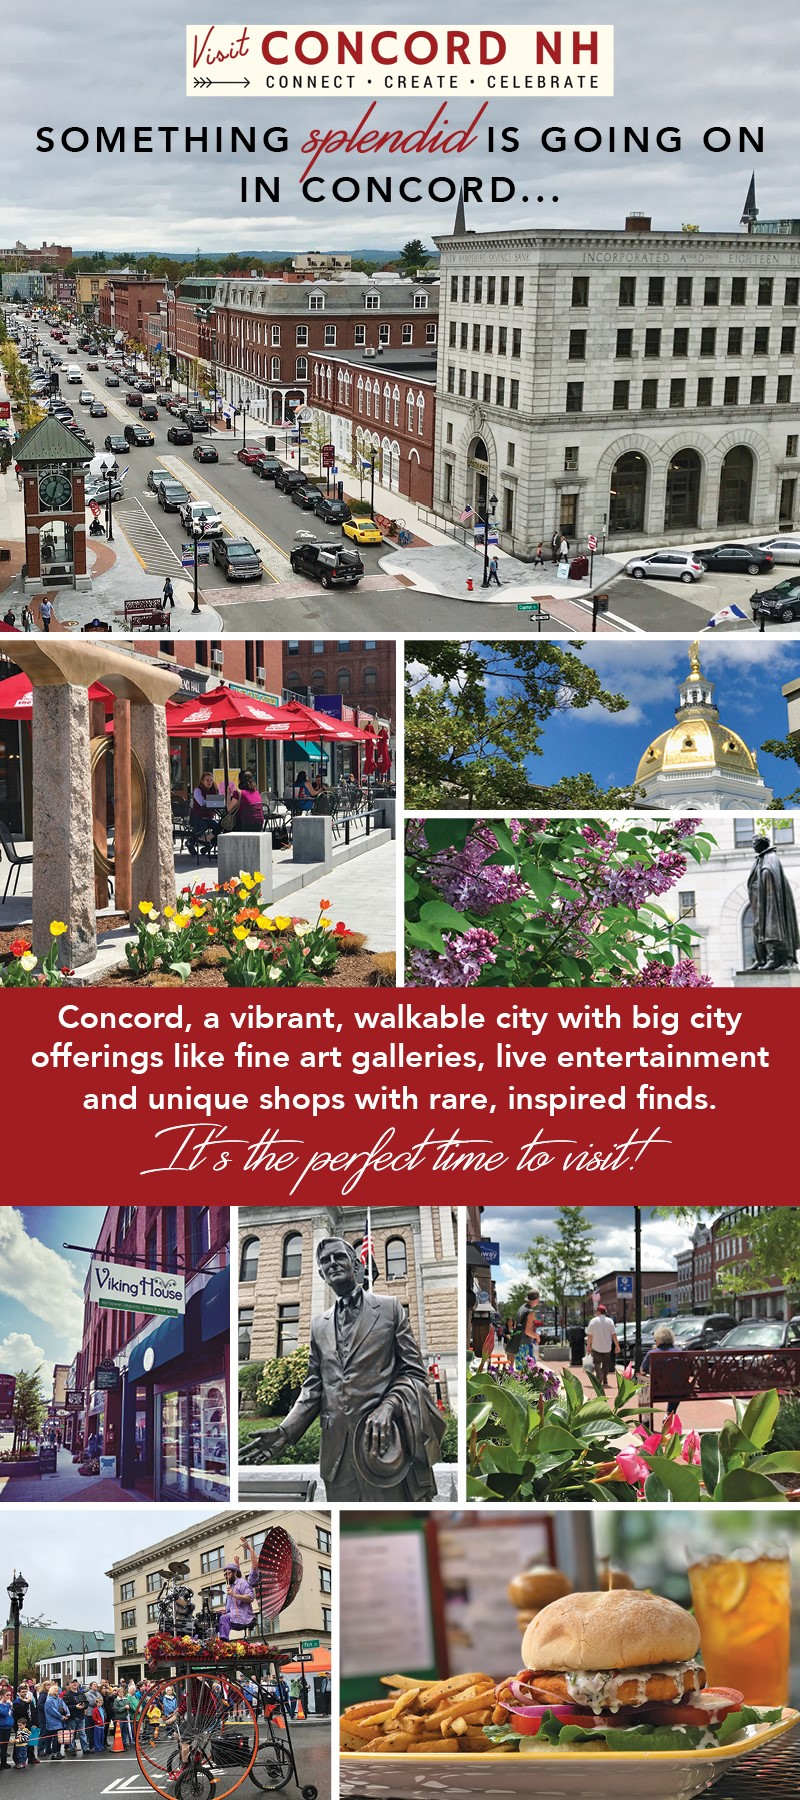 Pick up a VisitConcord-NH.com rack card at the I-93 North Welcome Center or in our 49 South Main Street Visitor Center